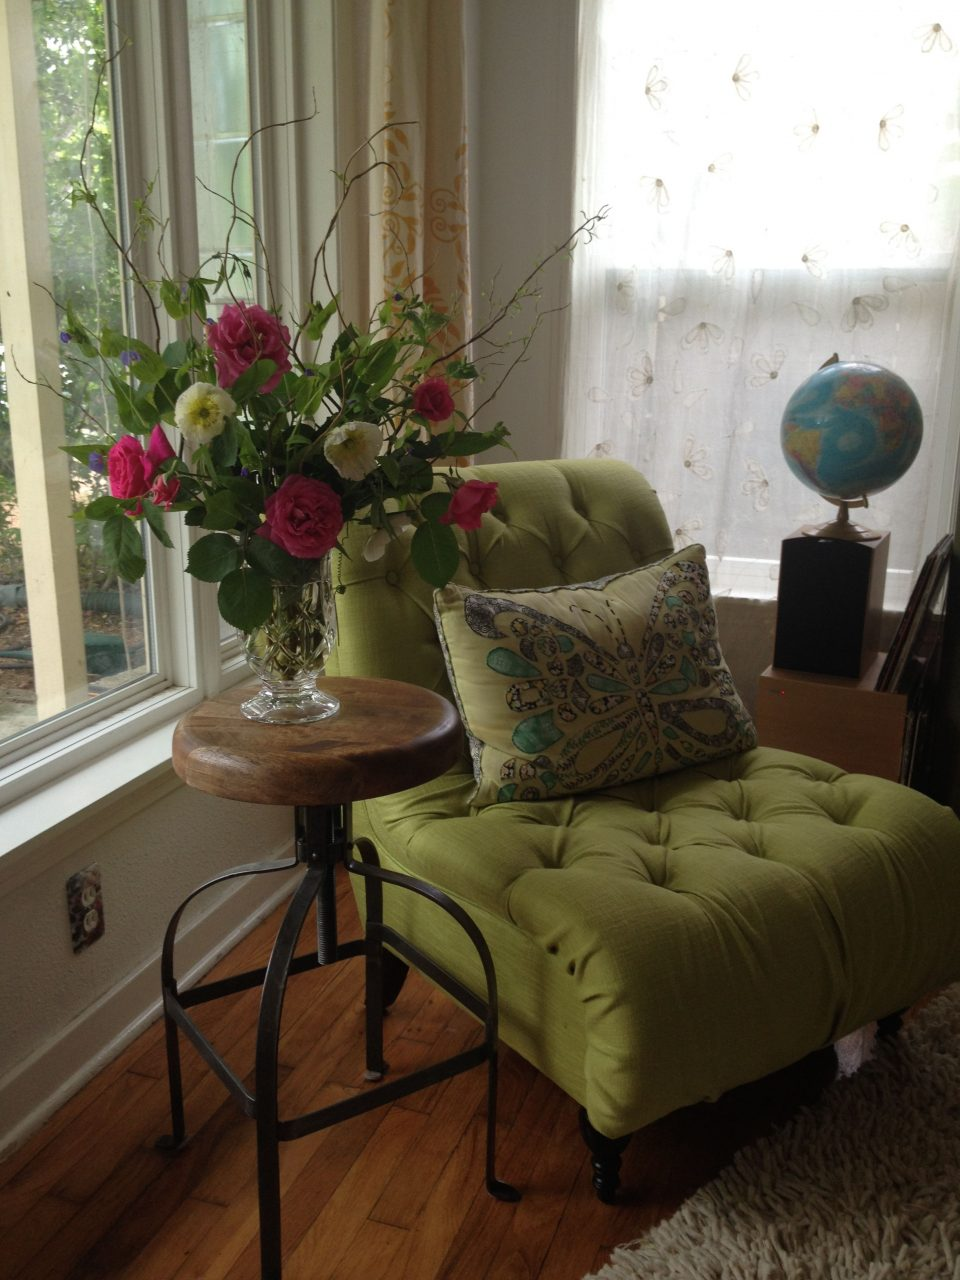 Day 4 Of Decorating With Flowers The Living Room Side Table